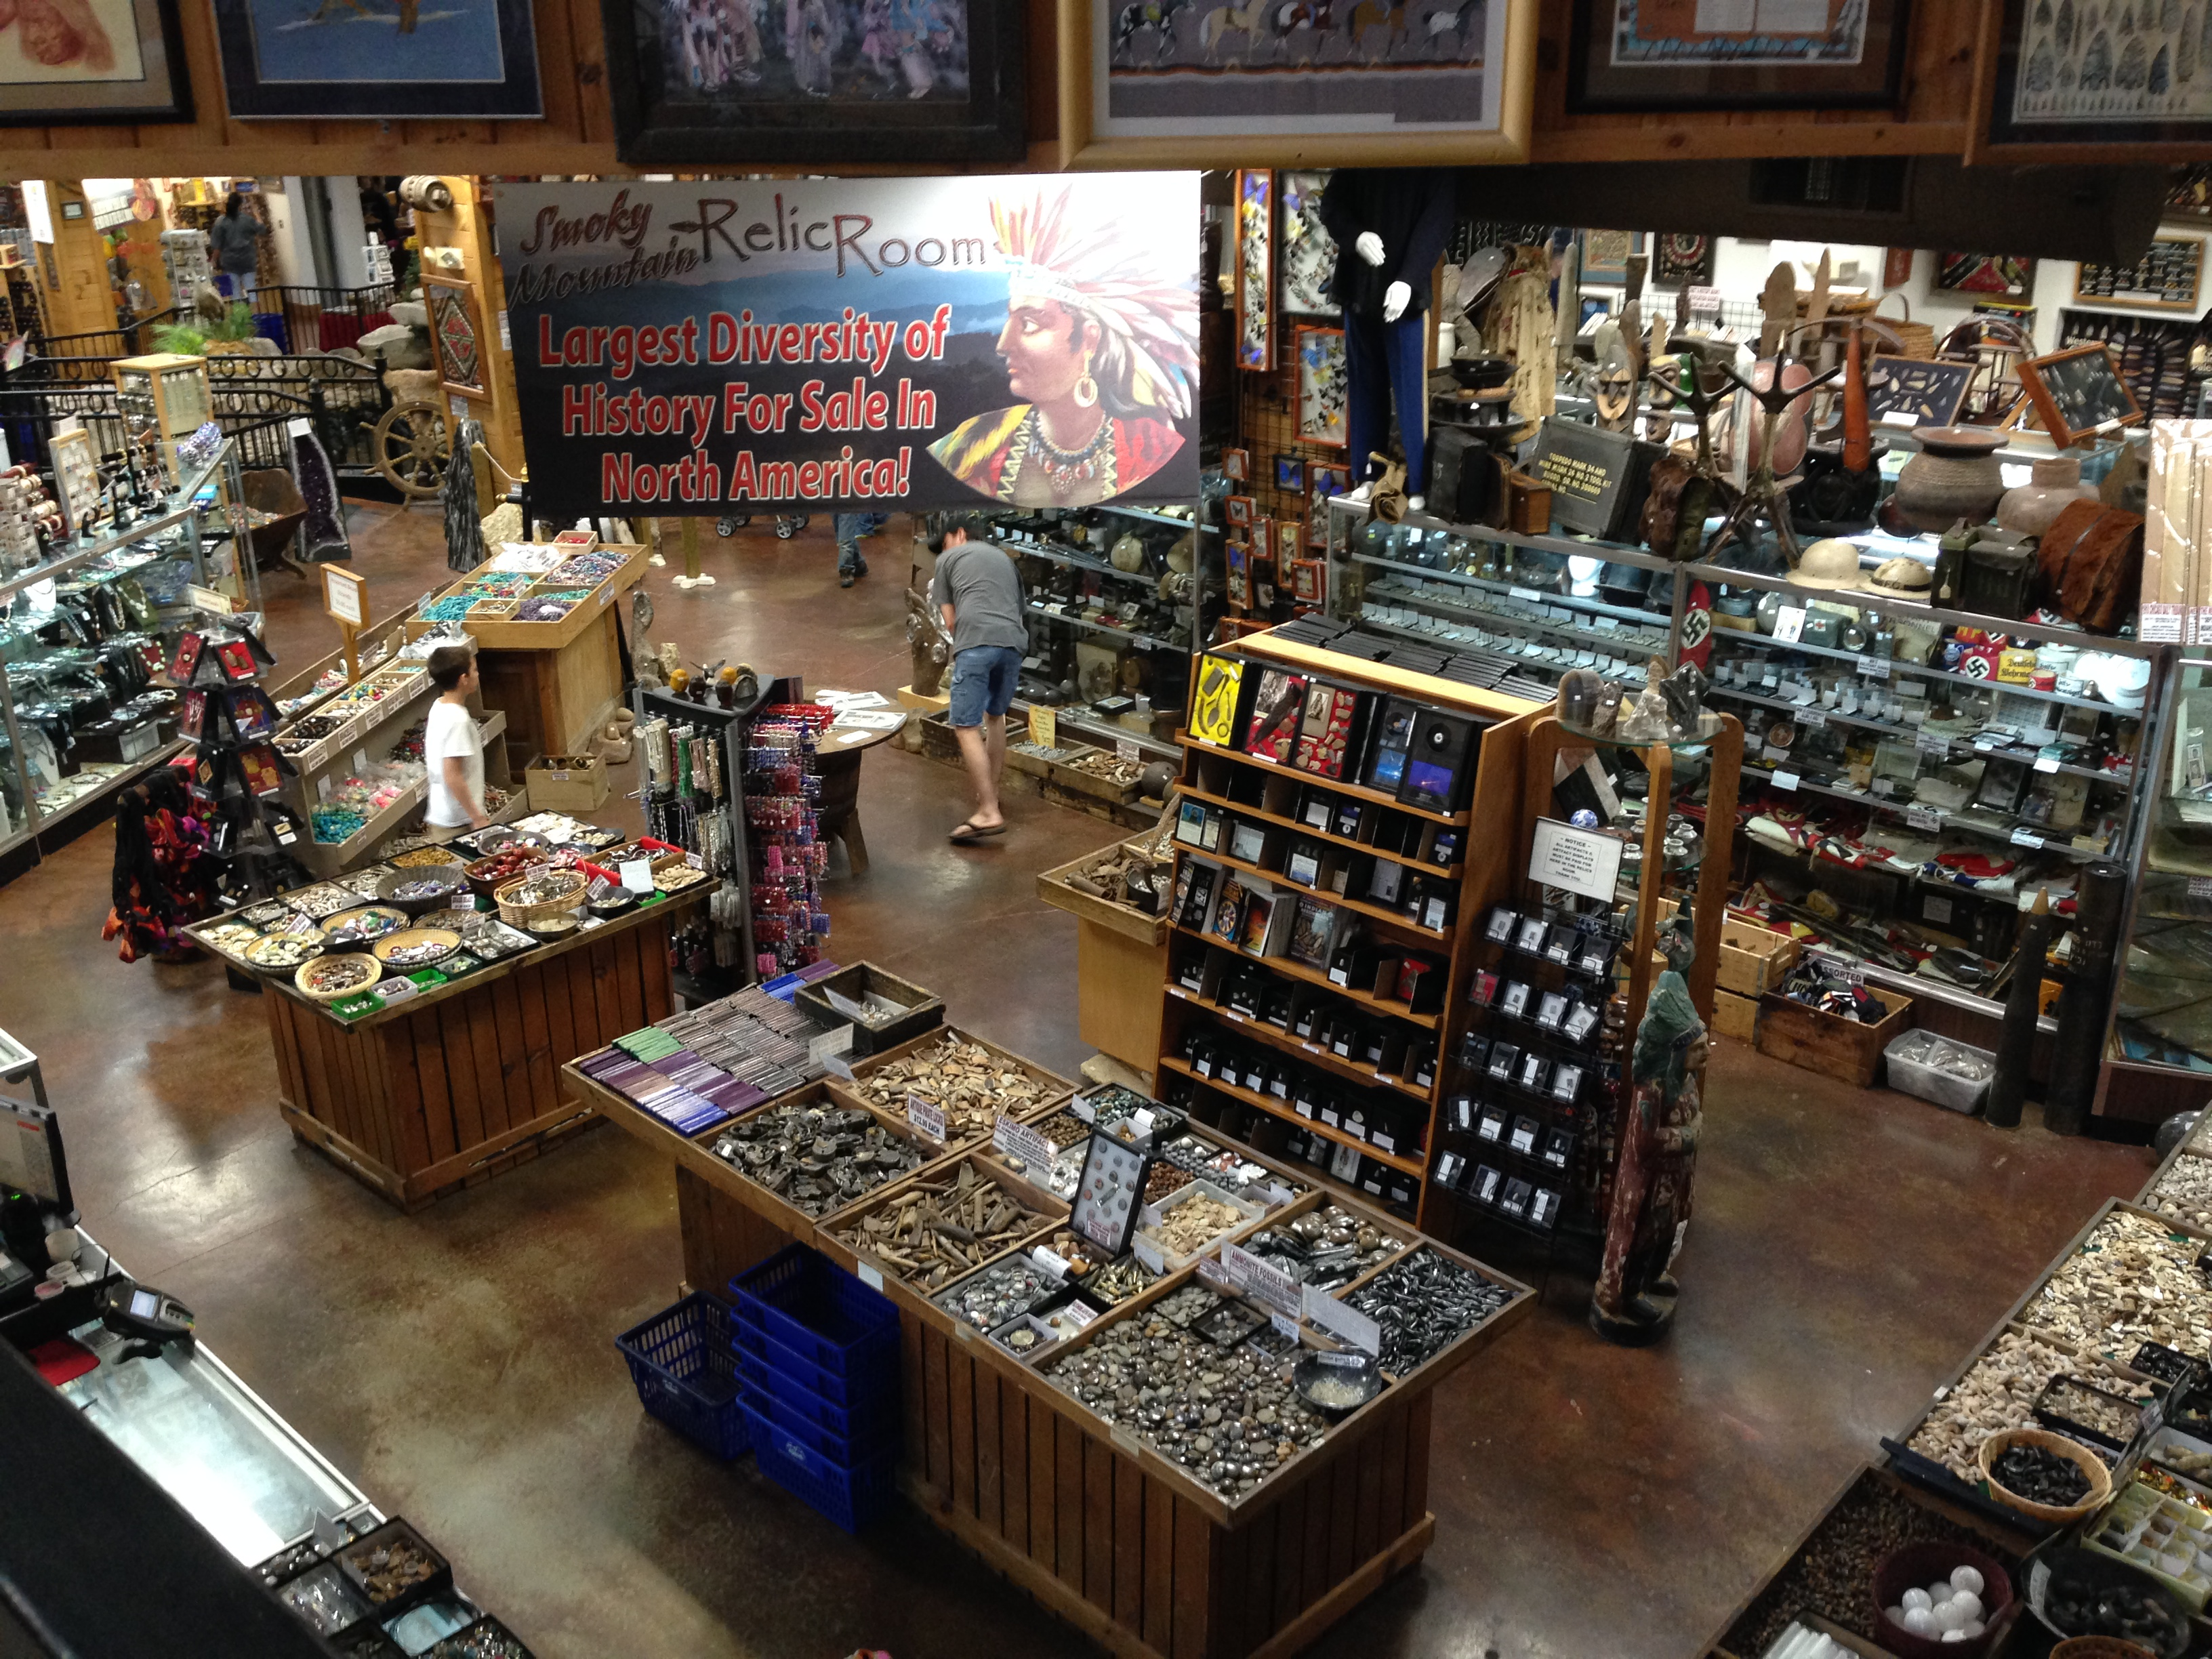 Smoky Mountain Knife Works Sevierville offers a true paradise for knife enthusiasts of all ages and varieties. Whether you're searching for a knife for that next big hunting trip or for everyday use in the kitchen, if you can imagine it, Smoky Mountain Knife Works Sevierville probably has the knife you need.